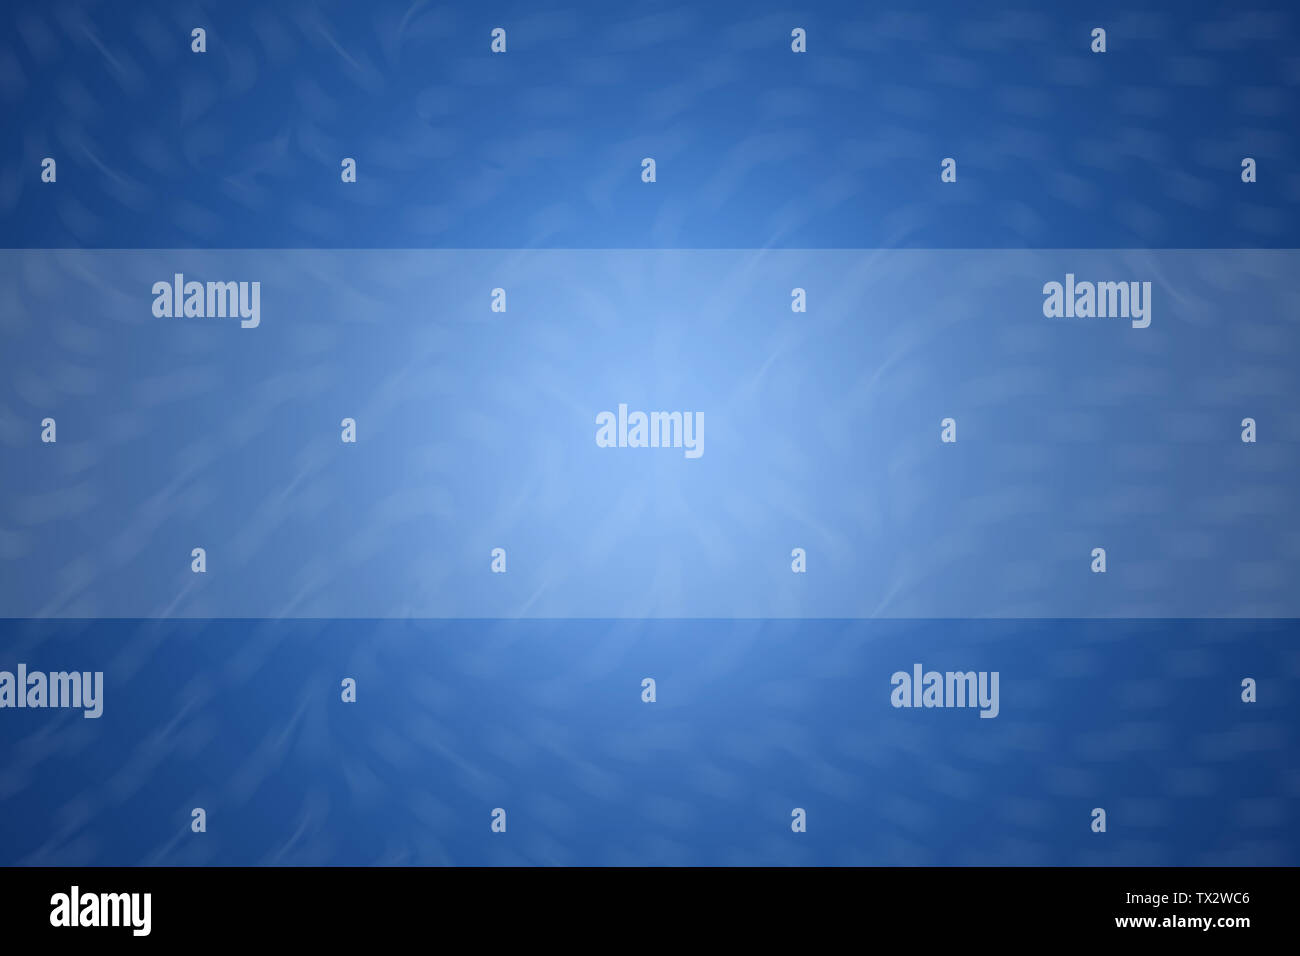 Blue abstract background illustration, Copy space for text banner, - Stock Image